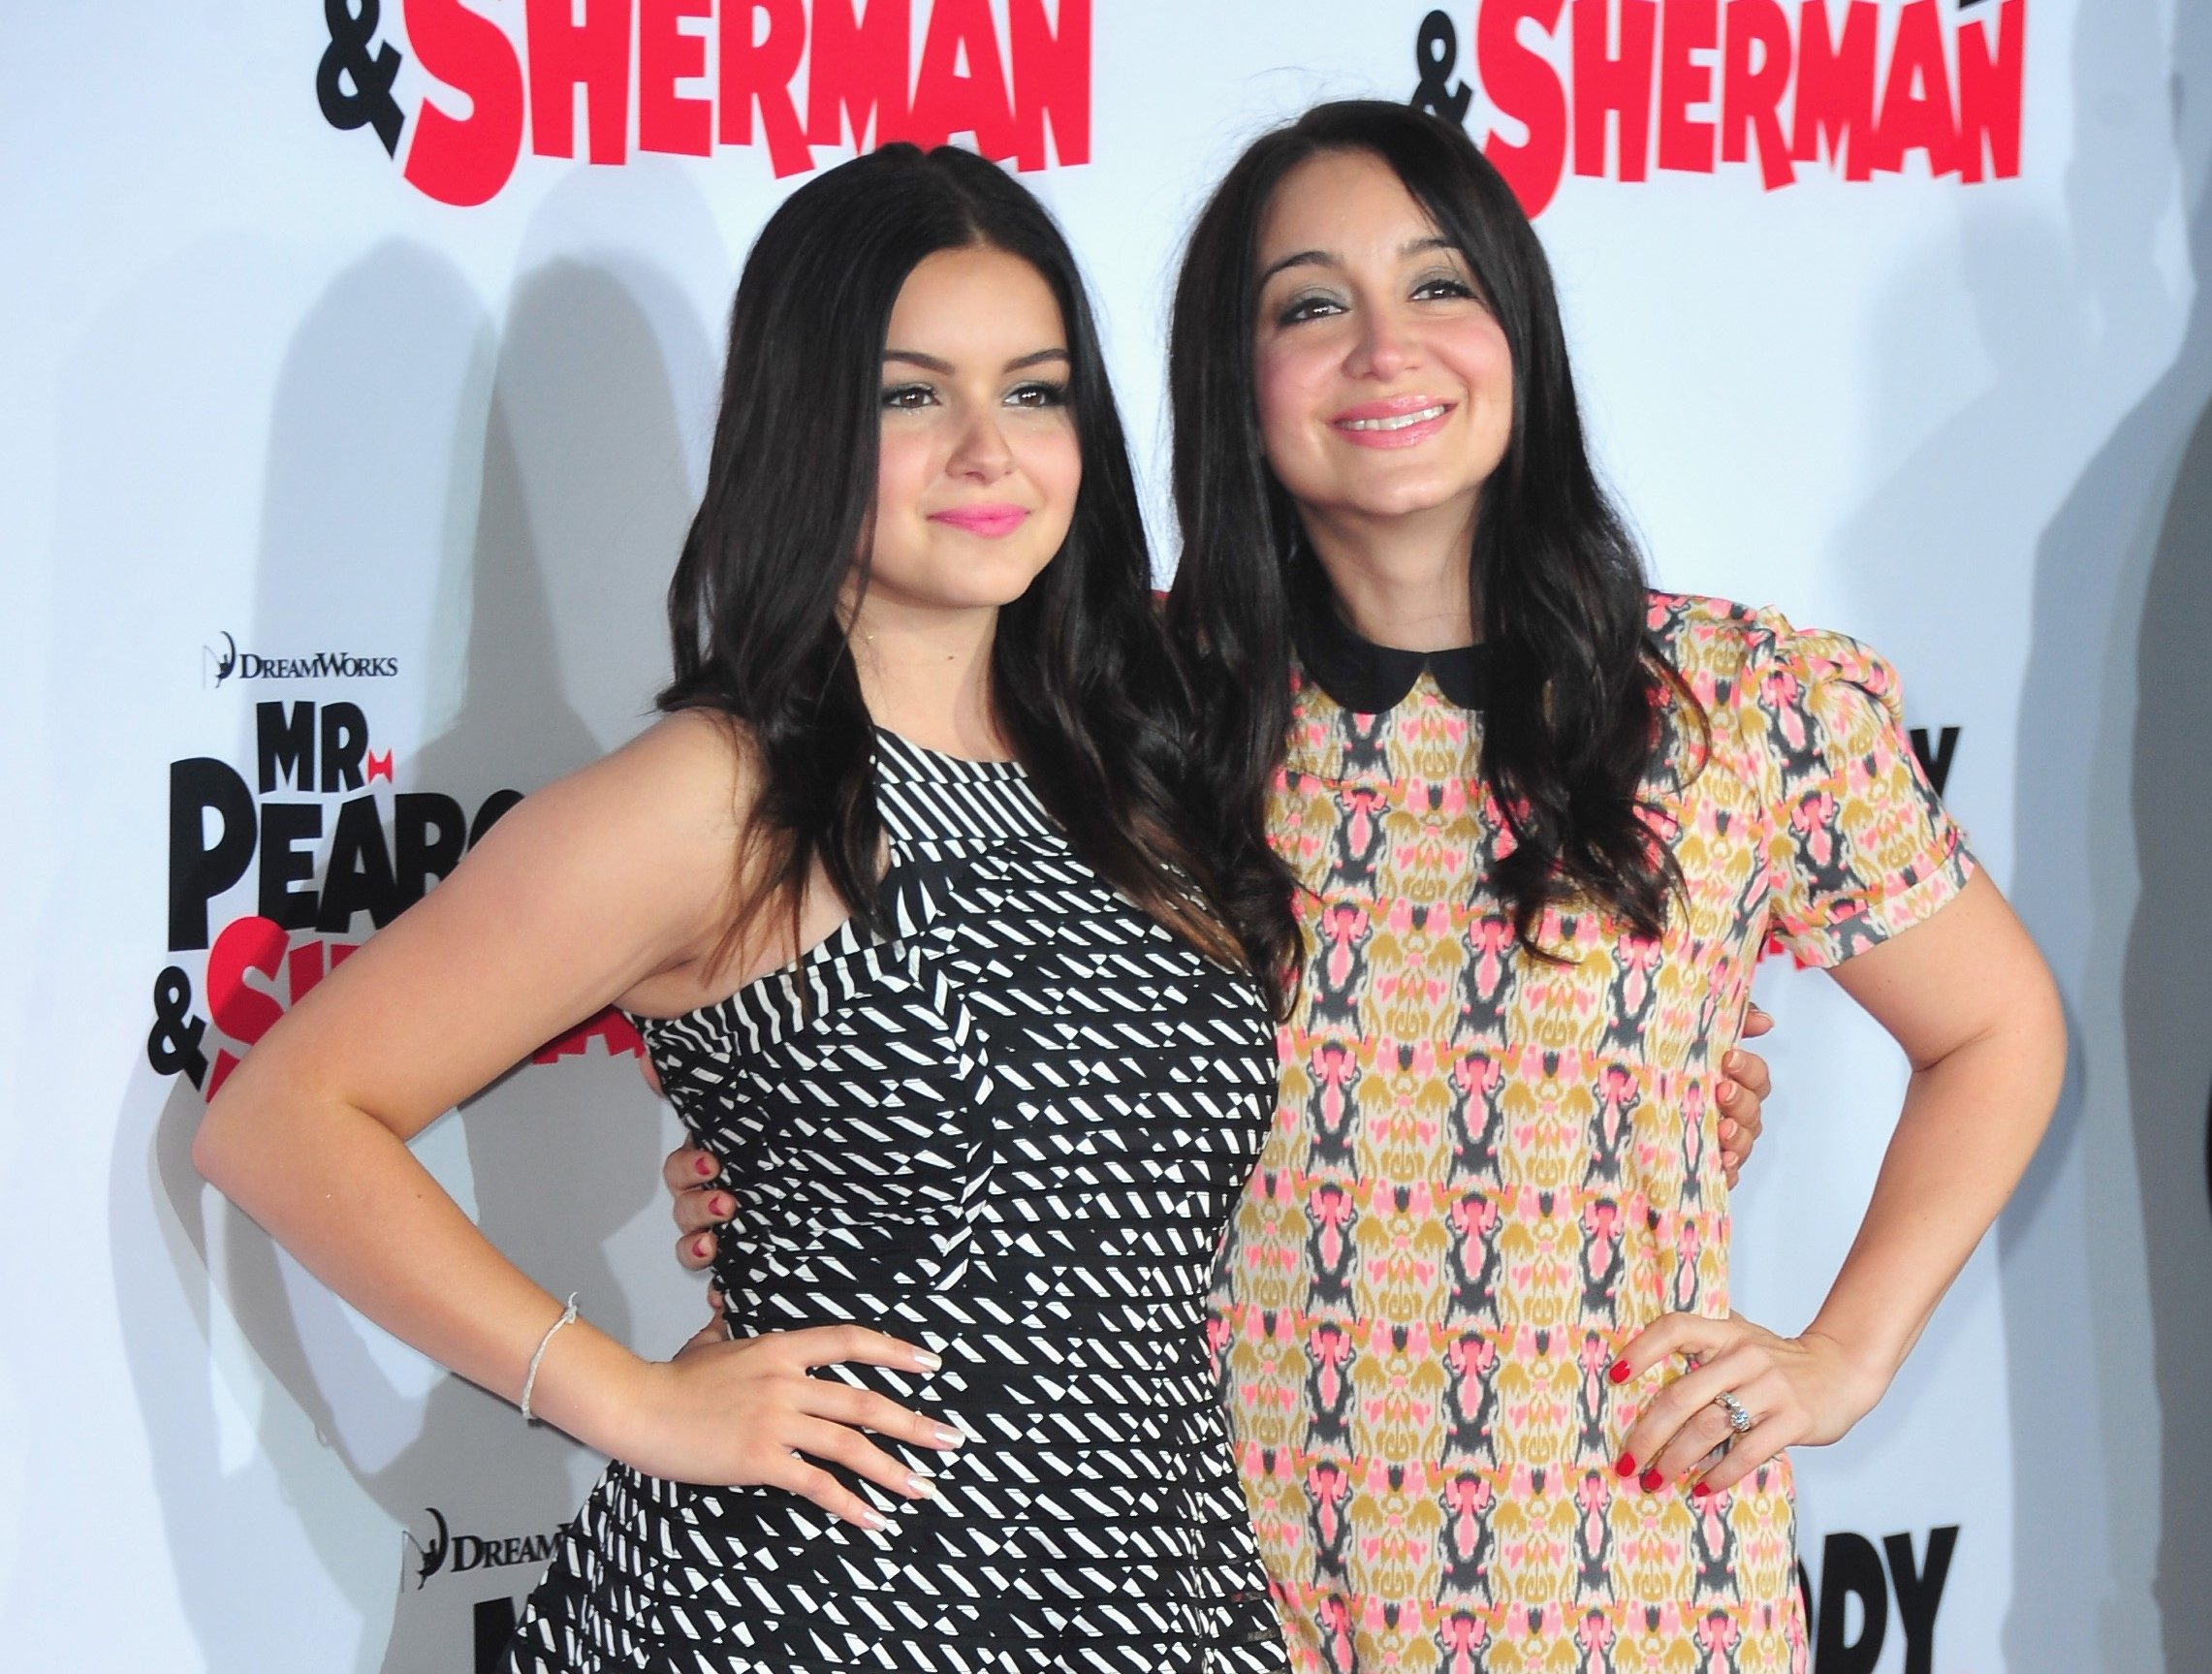 Ariel Winter and her sister at a premier